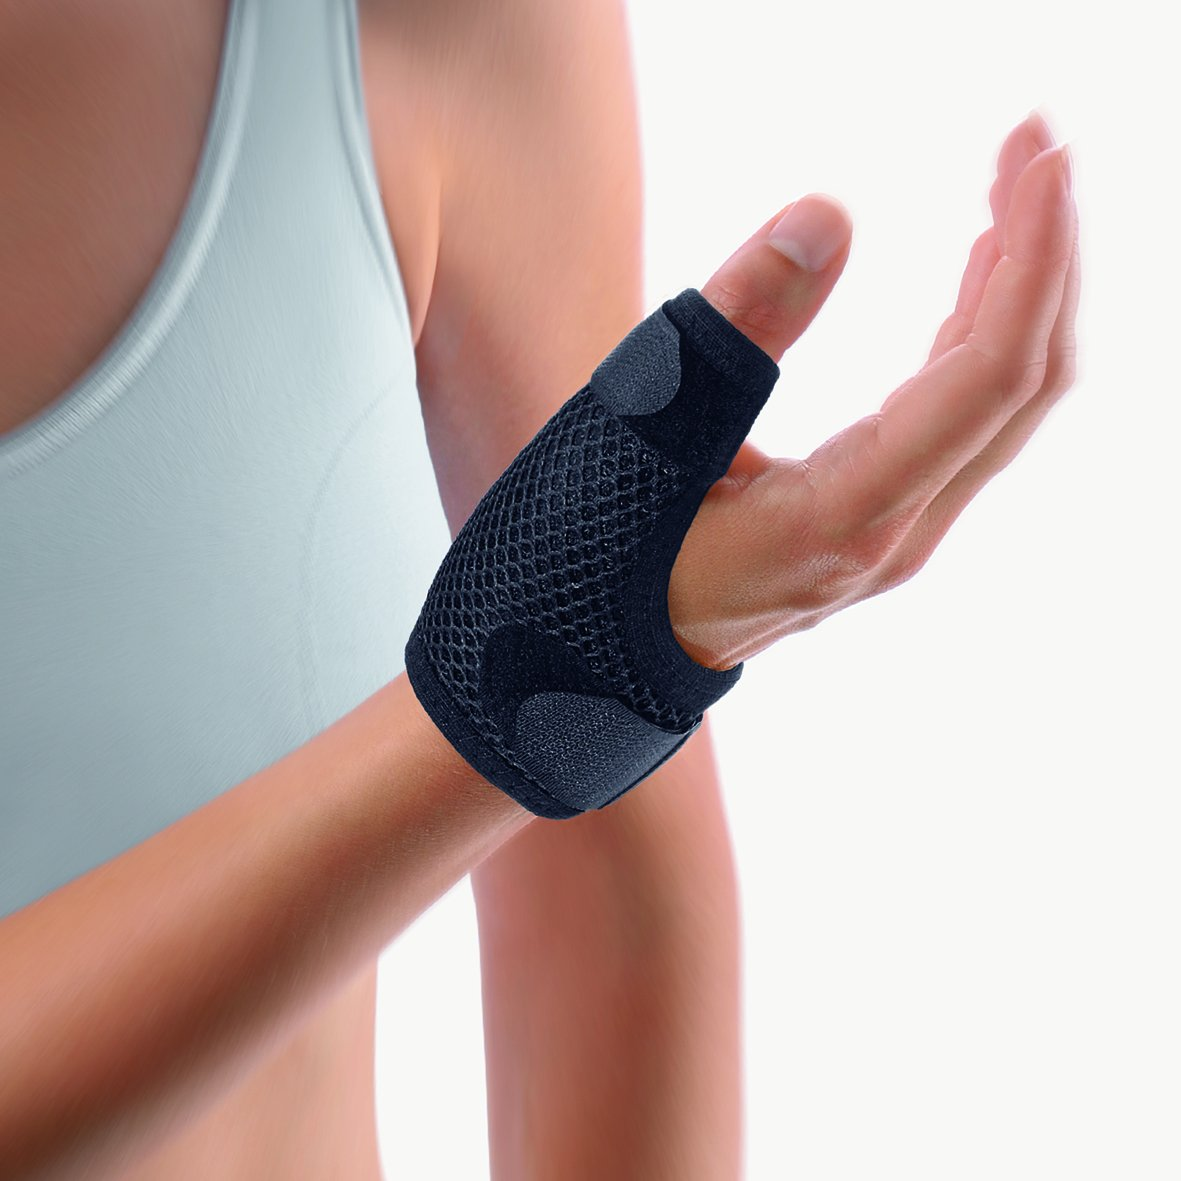 Bort Soft Thumb Splint, Arthritis, Thumb Spica, Breathable, immobilization of The metacarpophalangeal, CMC, Basal and MCP Joint, Trigger Thumb, Germany 112710- Large, Black, 7.5'' - 8.3'' inches